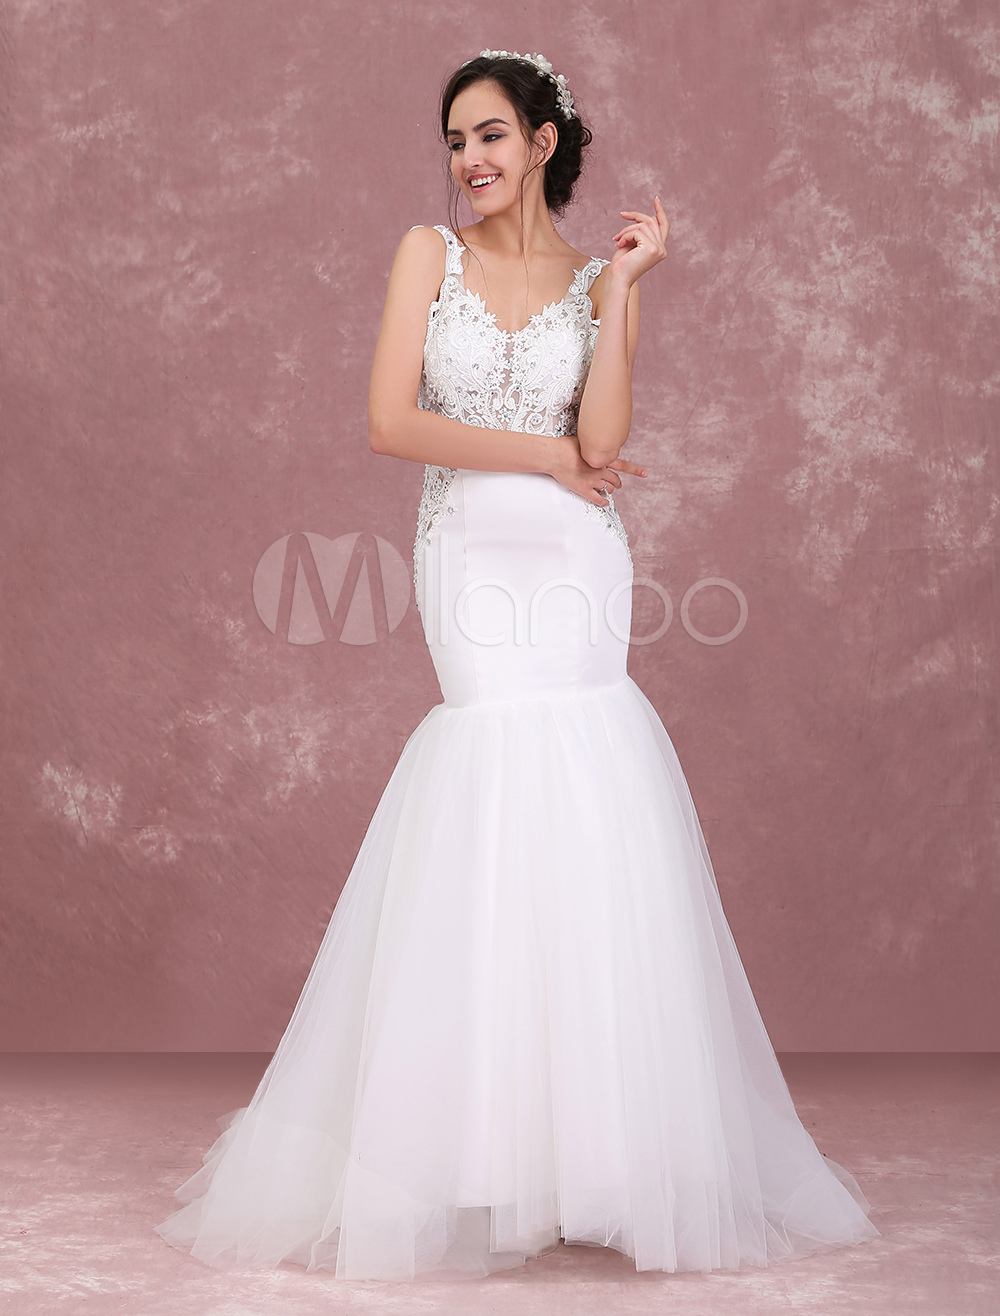 Ivory Wedding Dresses Backless Mermaid Bridal Dress Lace Beading V Neck Tulle Satin Wedding Gown